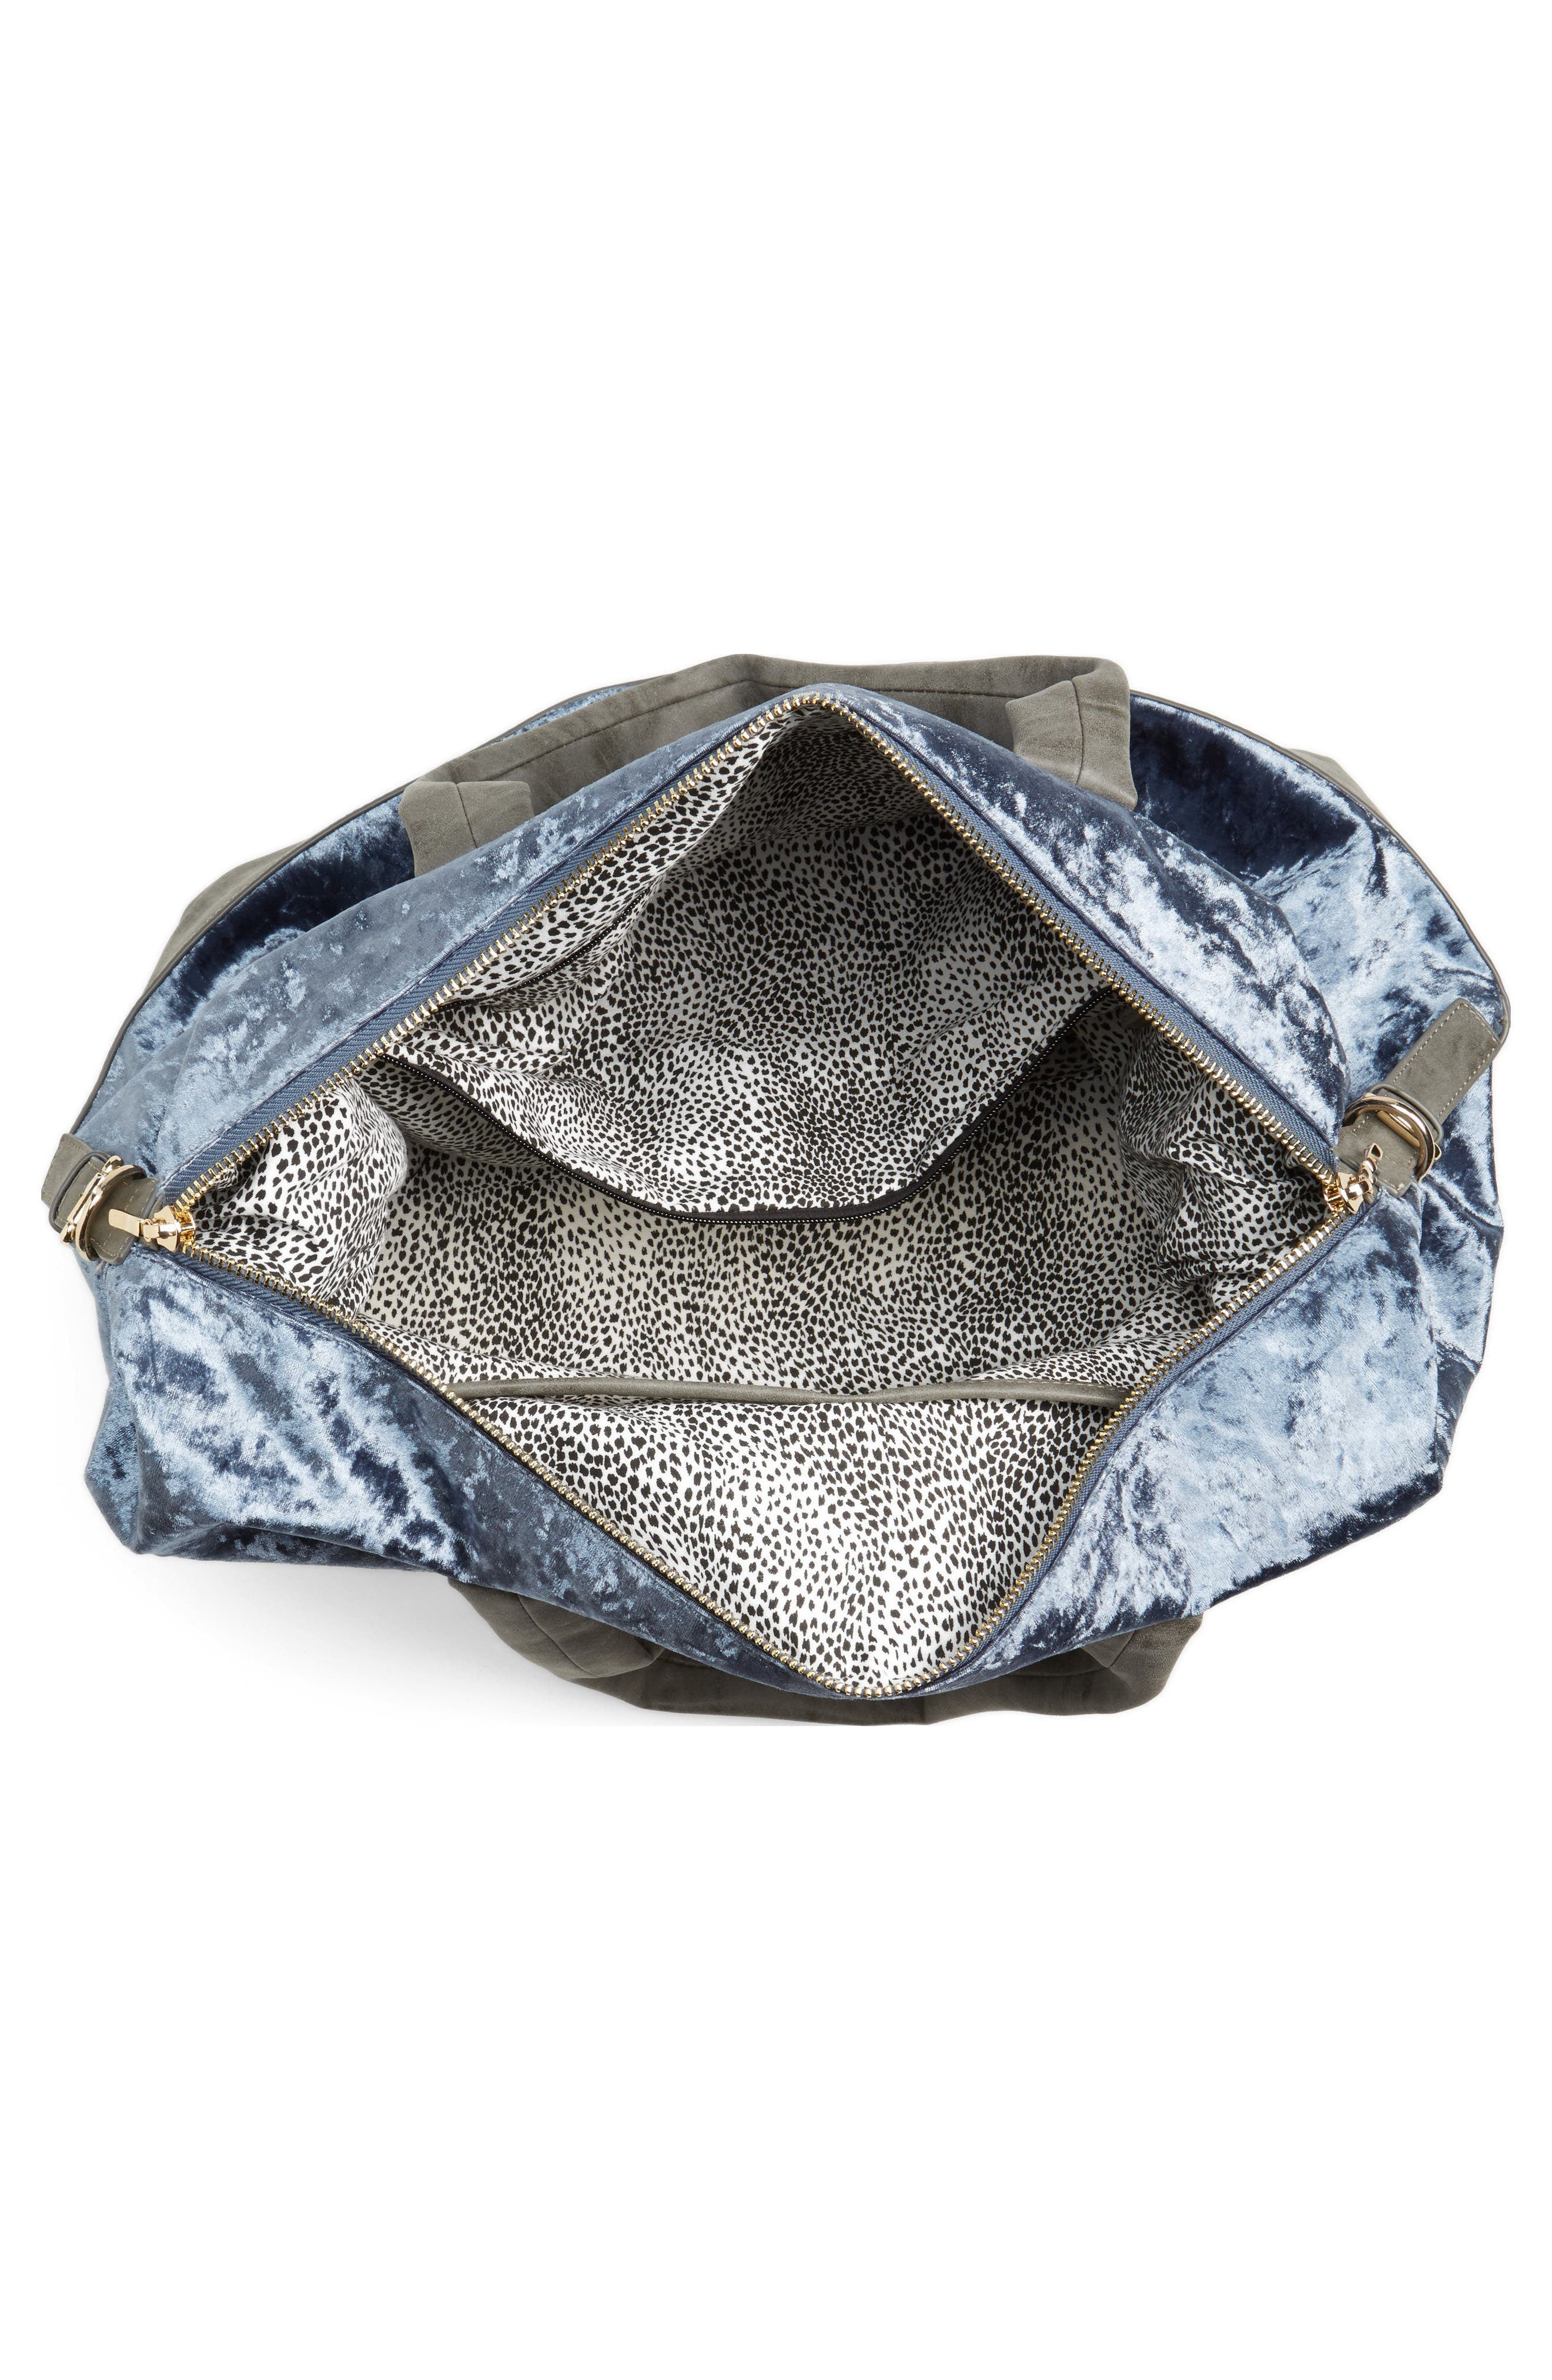 Venti Velvet Duffel Bag,                             Alternate thumbnail 8, color,